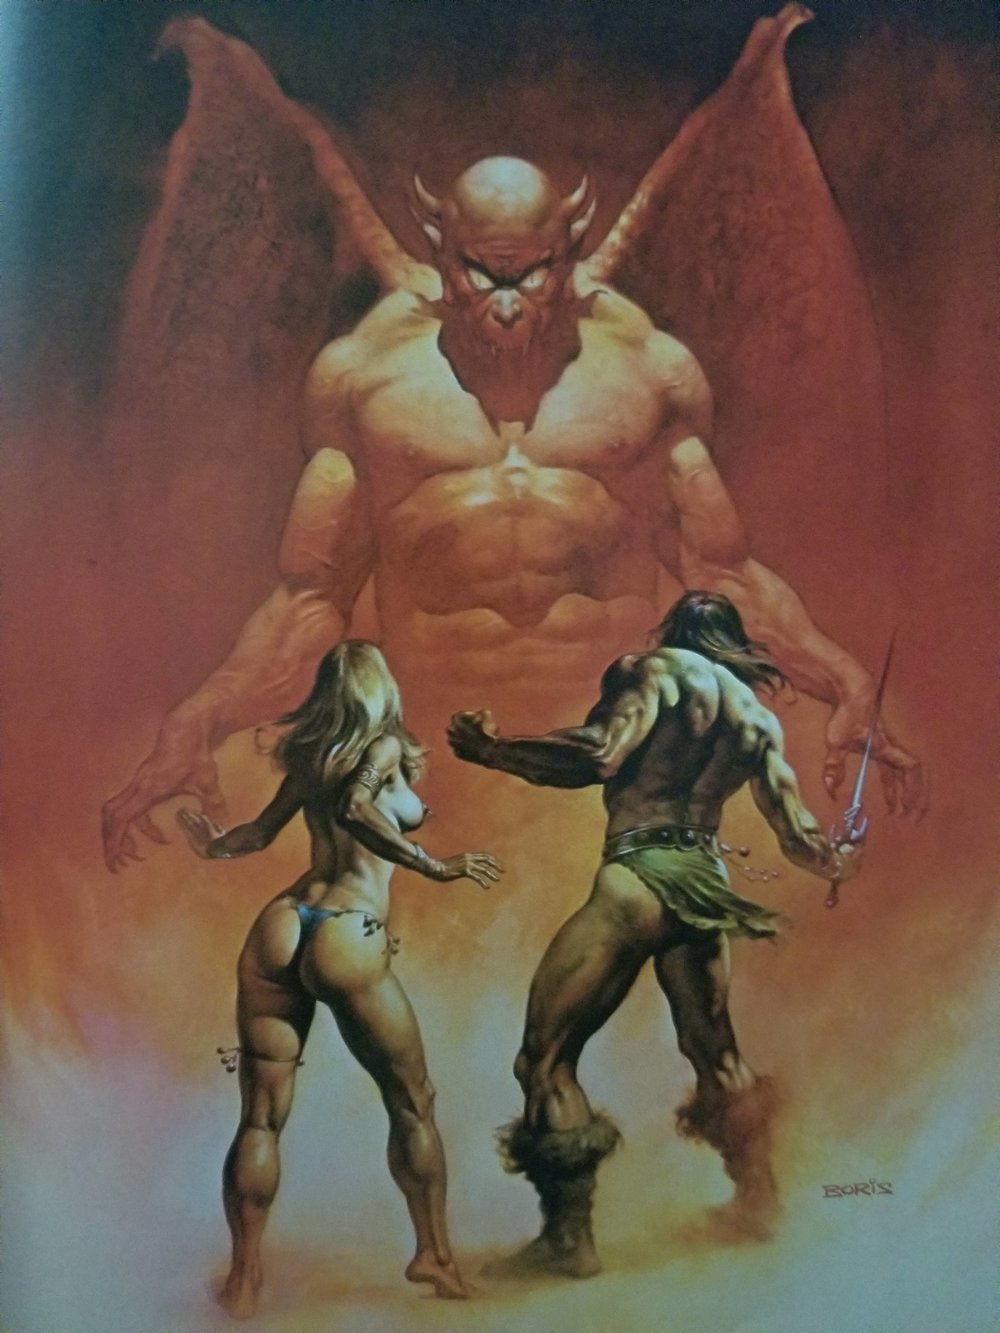 Boris Vallejo. Caleb thinks he's so smart. With his...knowledge.